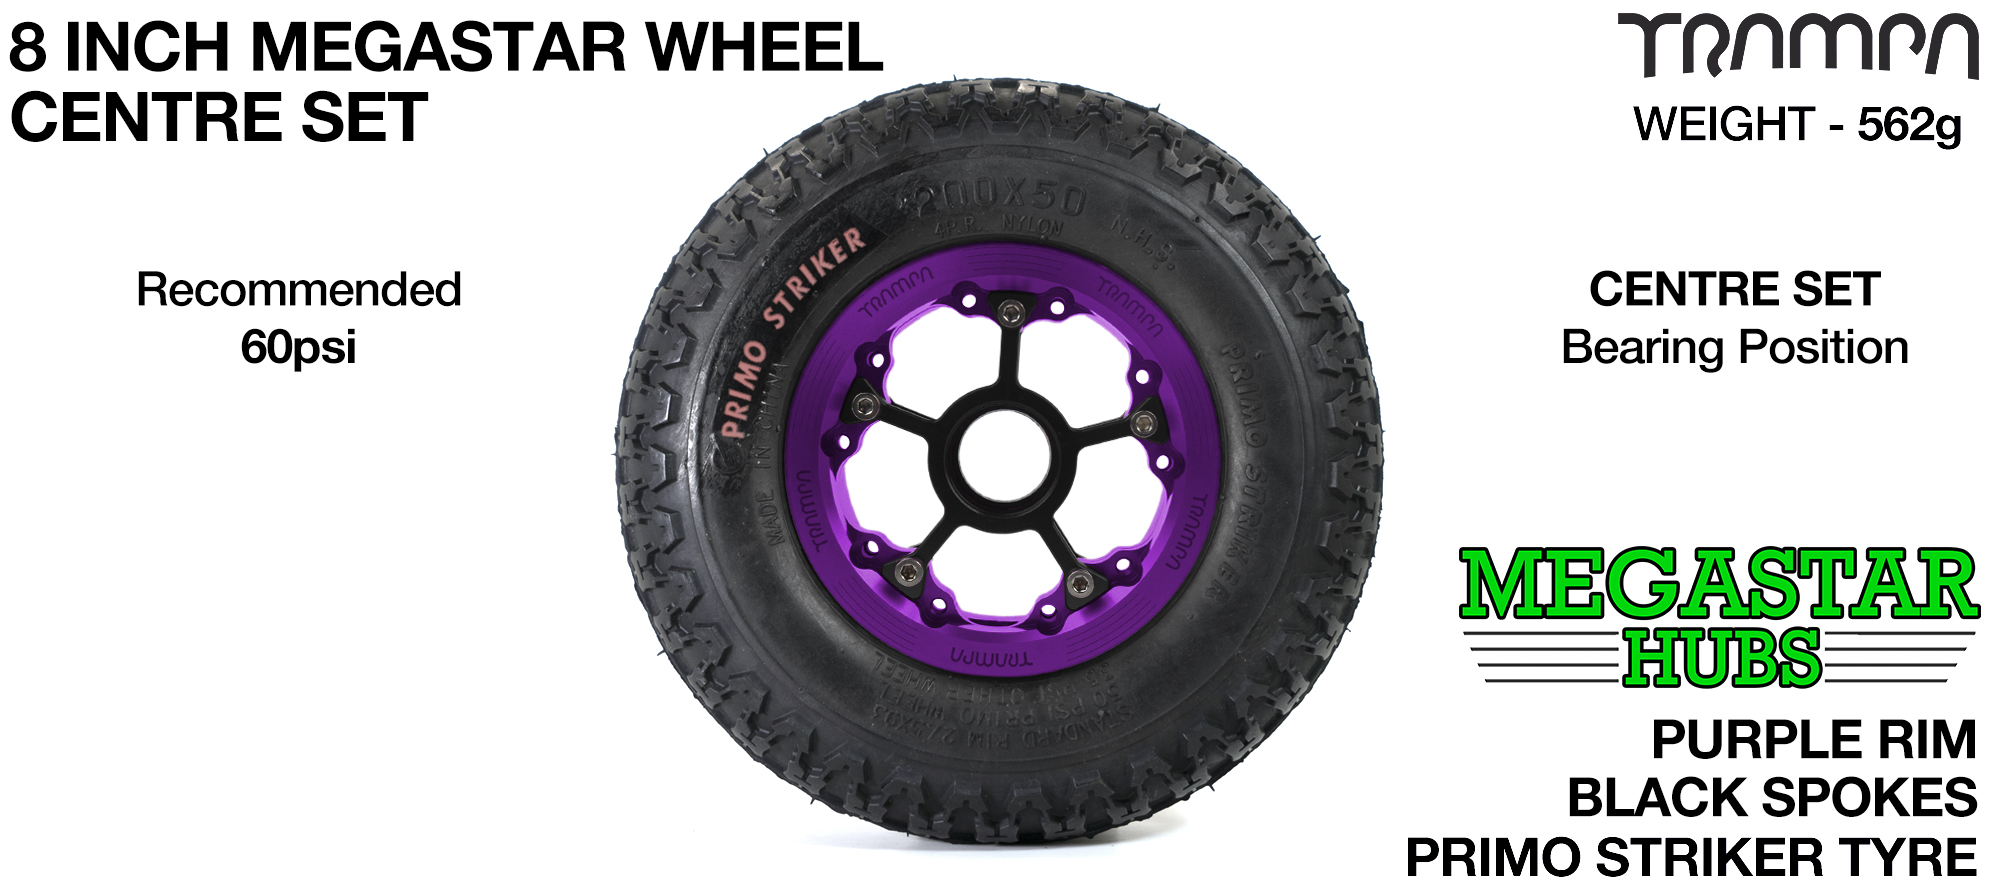 "PURPLE MEGASTAR Rims with BLACK Spokes & 8"" STRIKER Tyres"